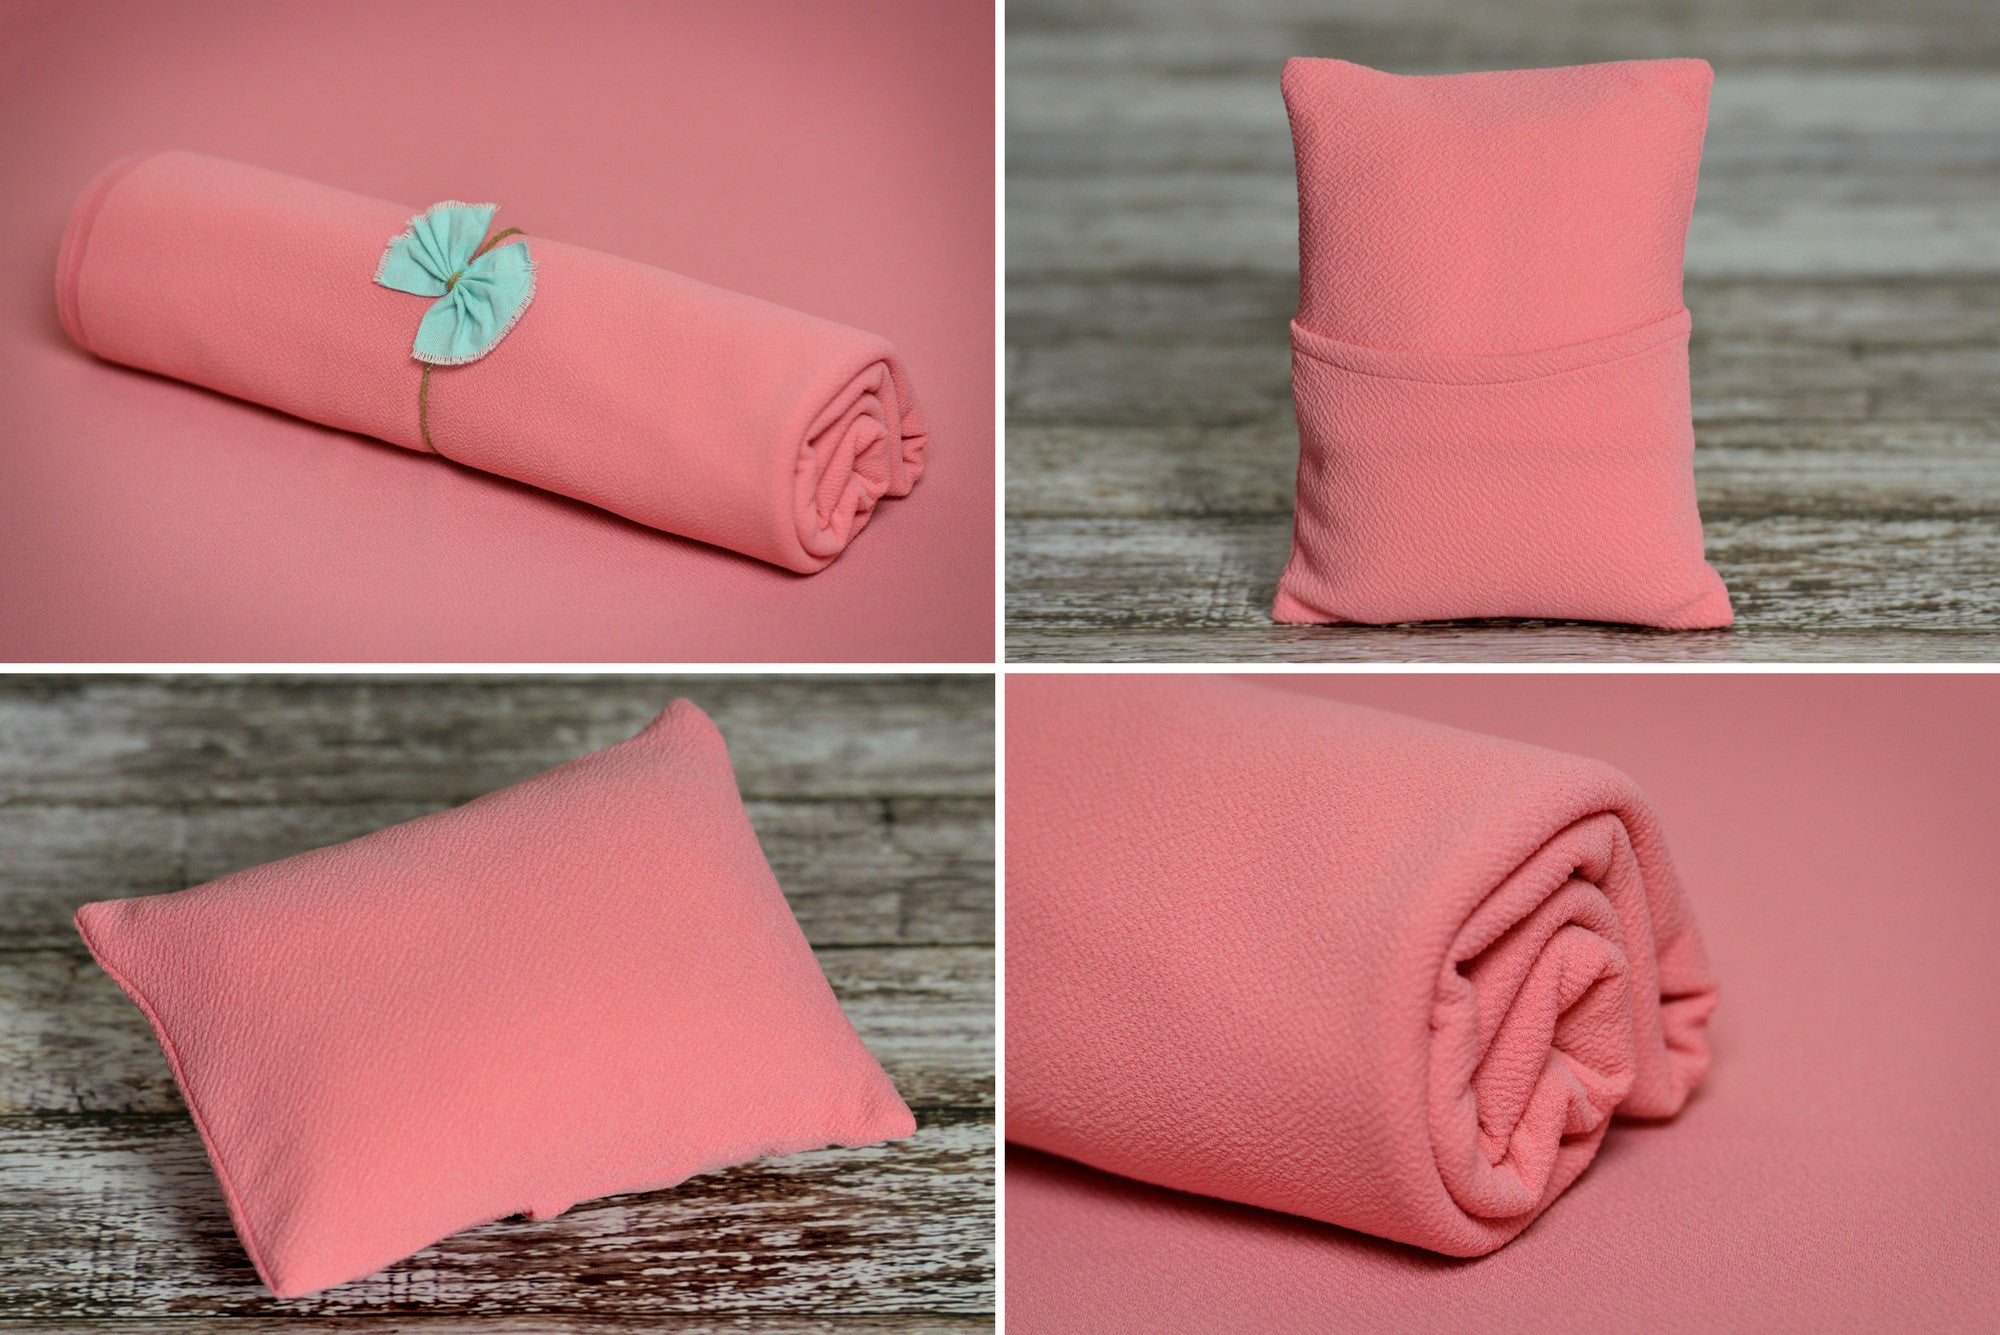 Matching Mini Pillow with Cover AND Bean Bag Fabric - Textured - Rose-Newborn Photography Props